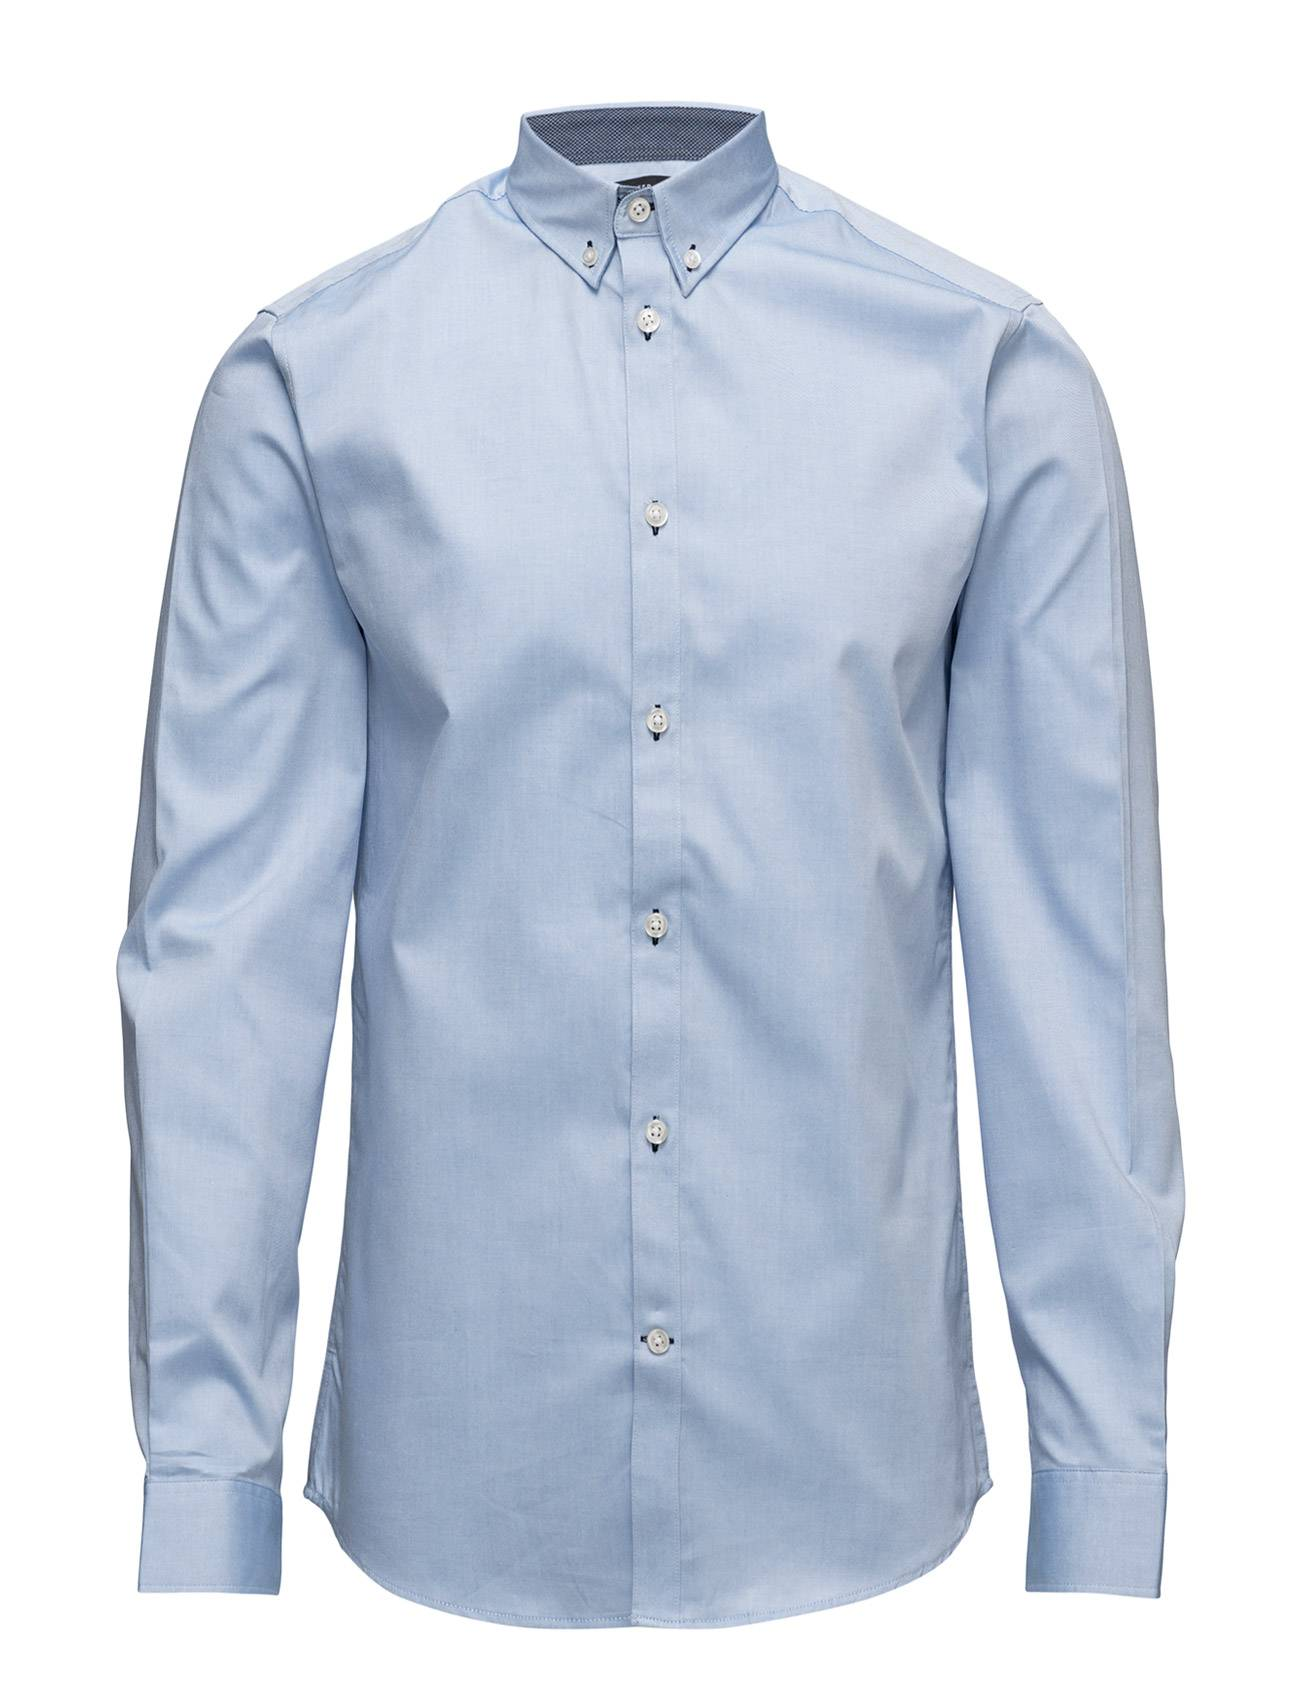 Selected Homme Shdonemark Shirt Ls Noos